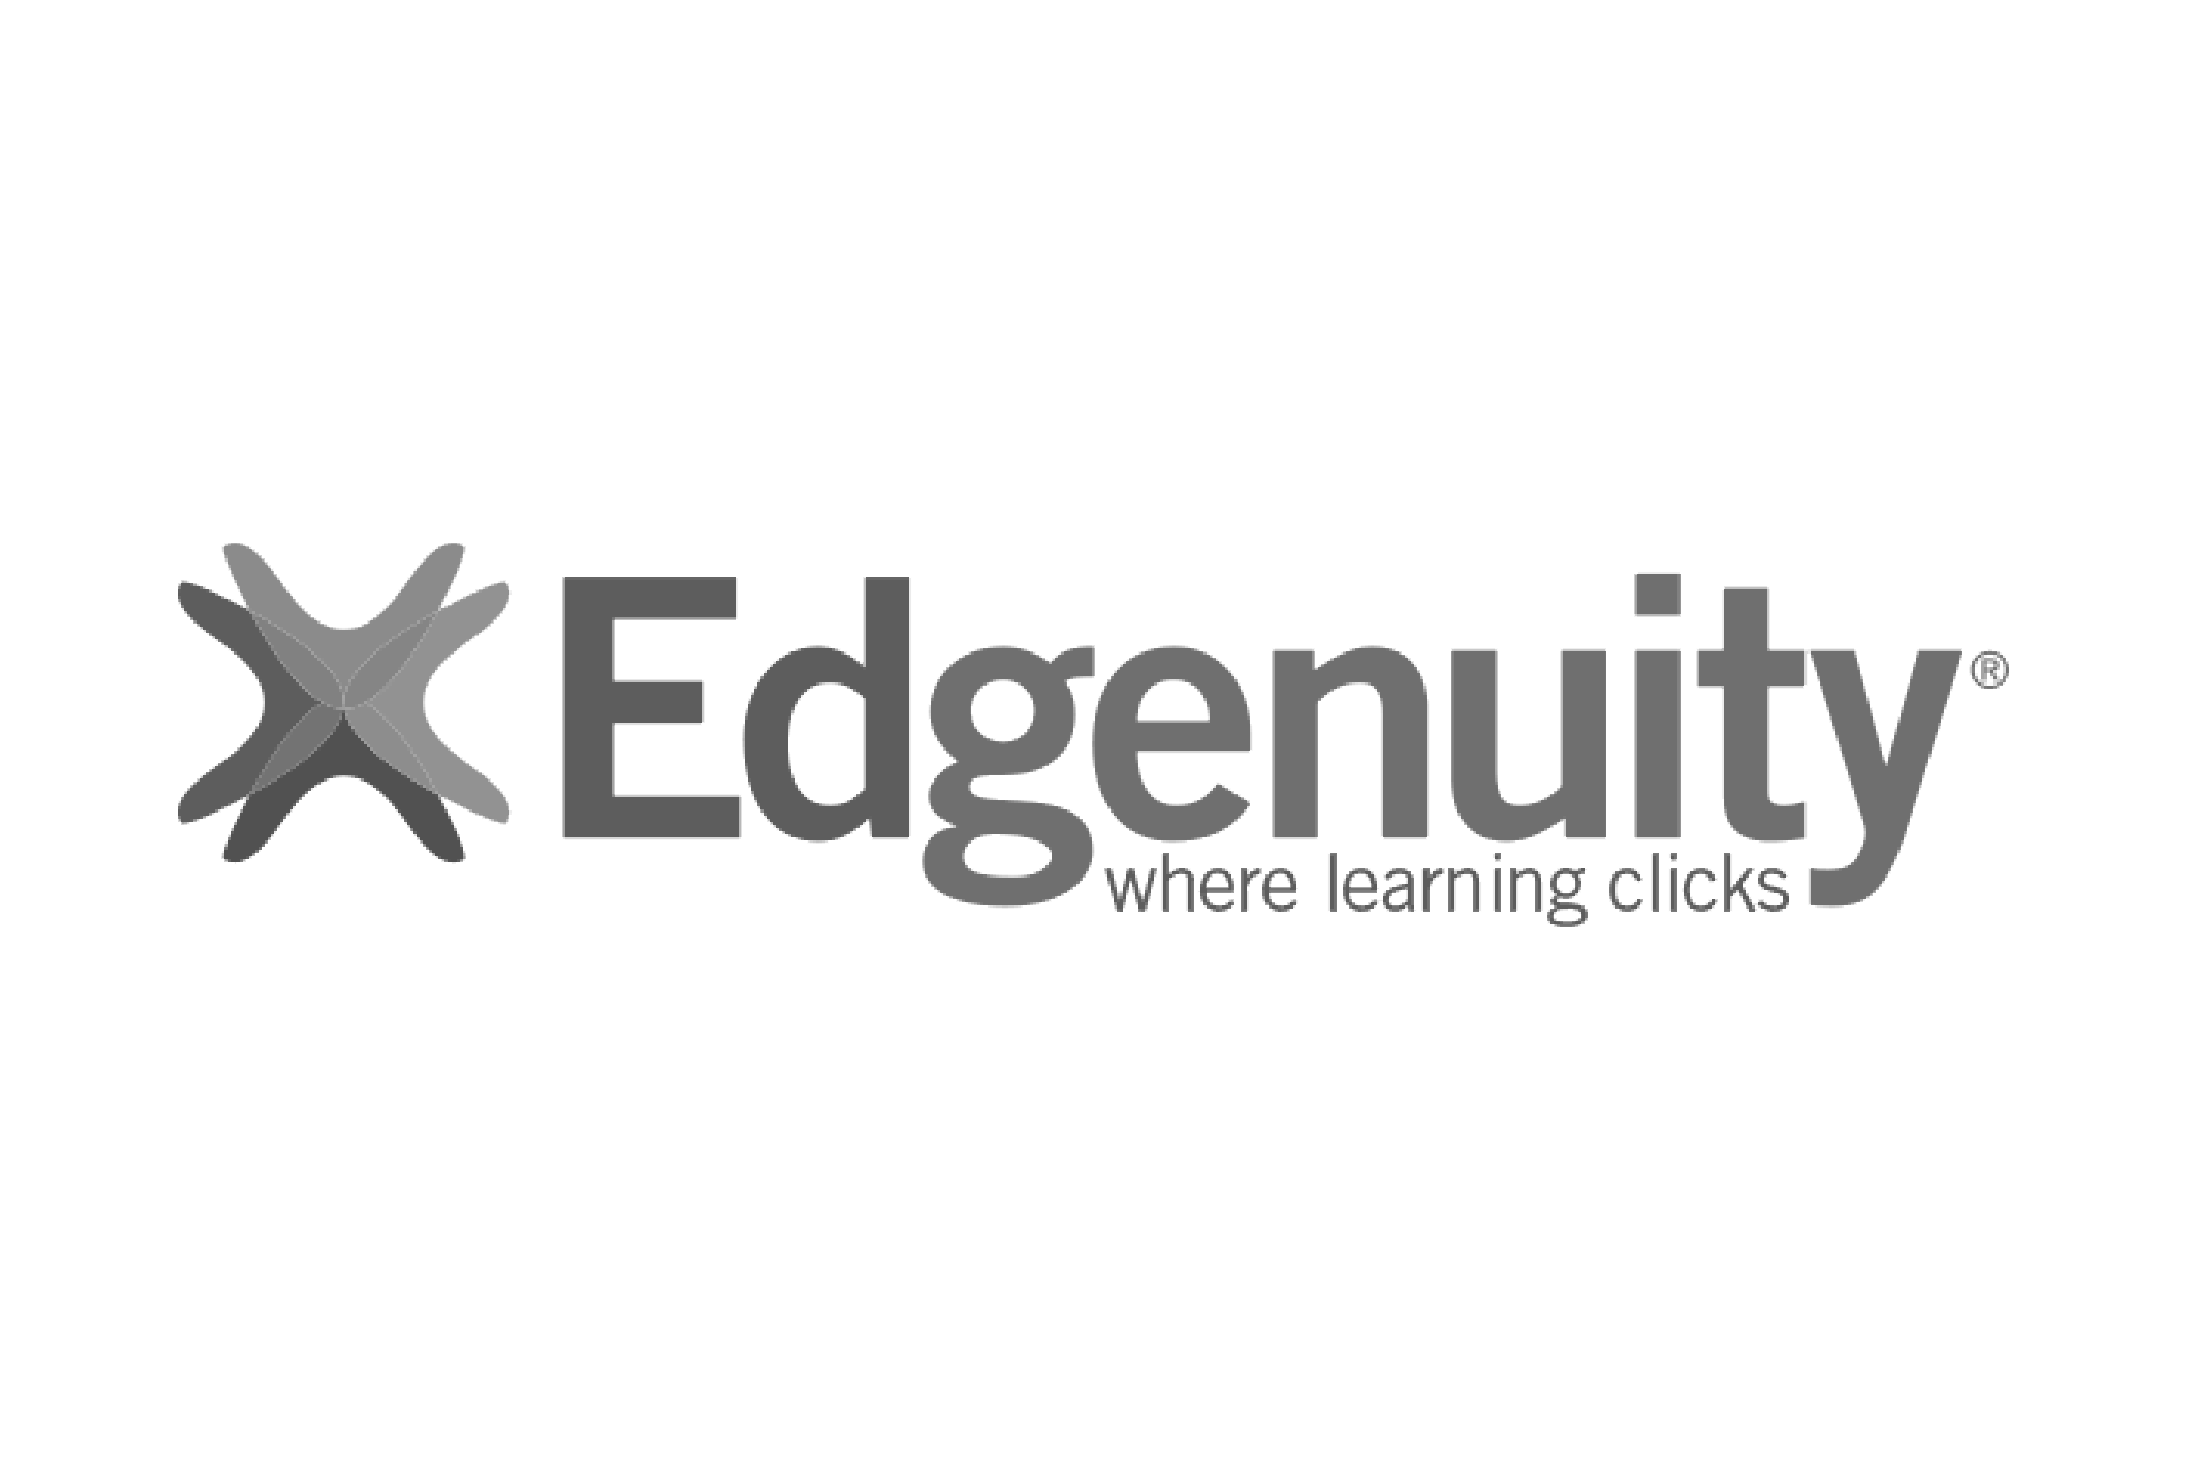 logo_edgenuity_gray